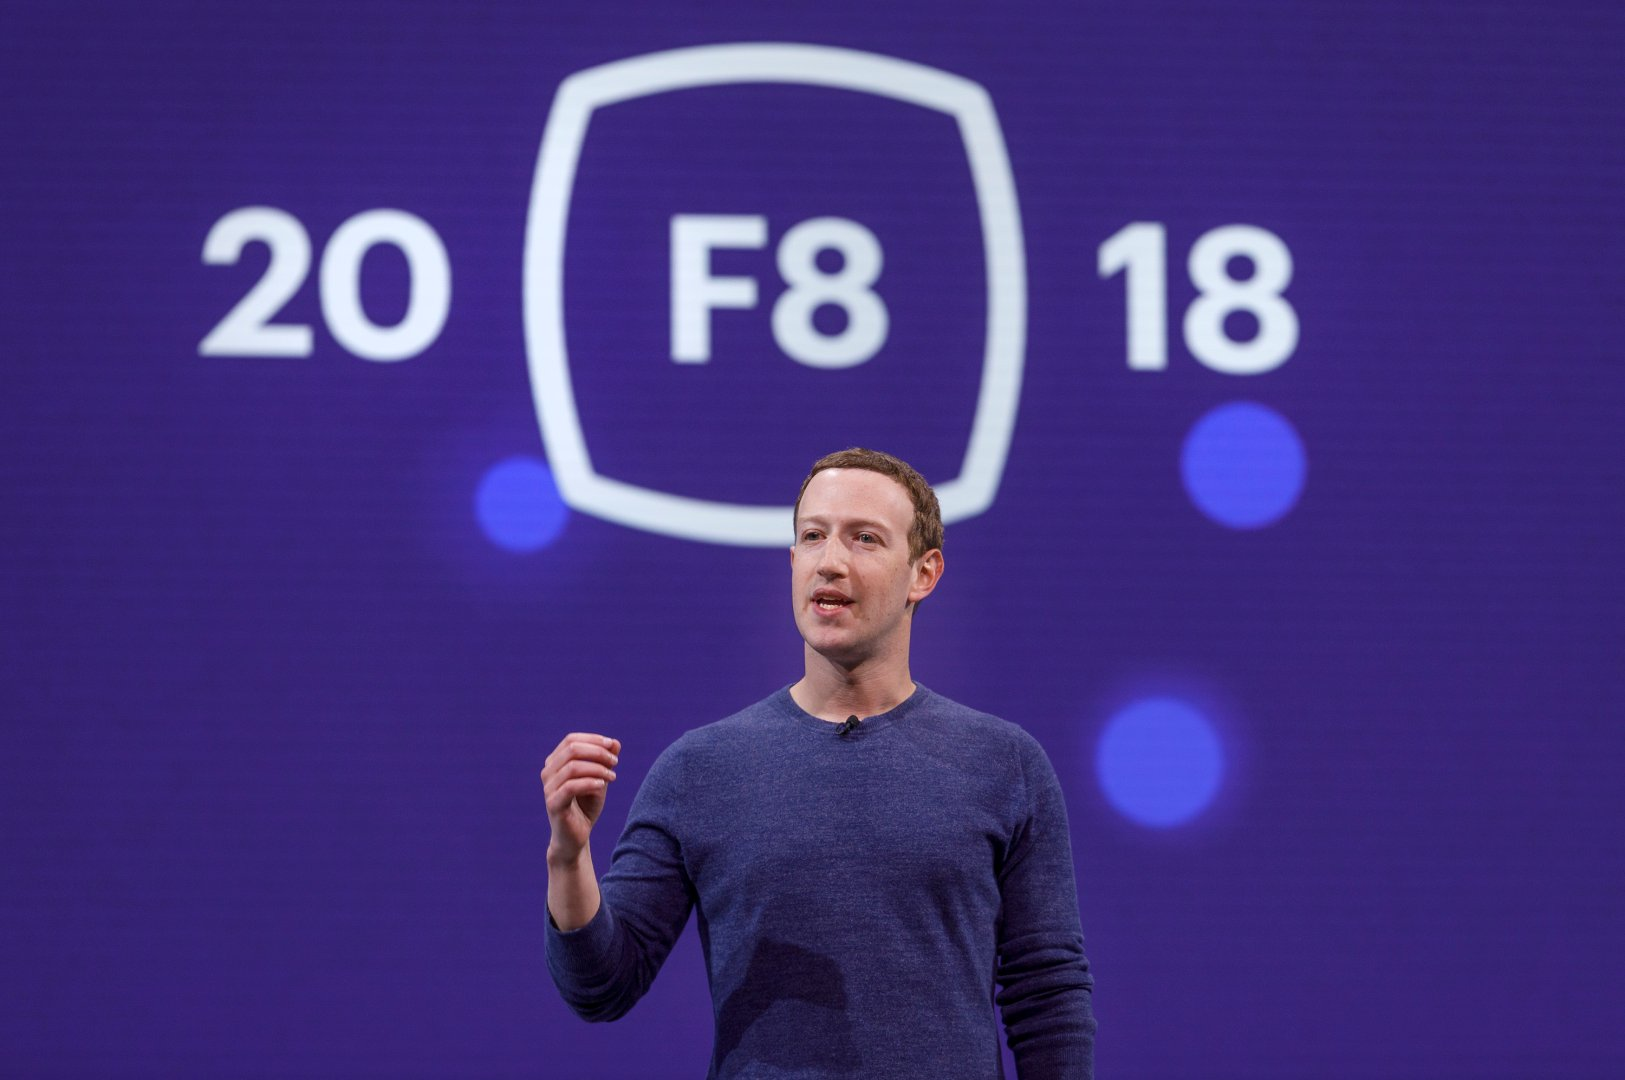 Don't be fooled: the main beneficiary of Mark Zuckerberg's apparent embrace of privacy is Facebook, not you